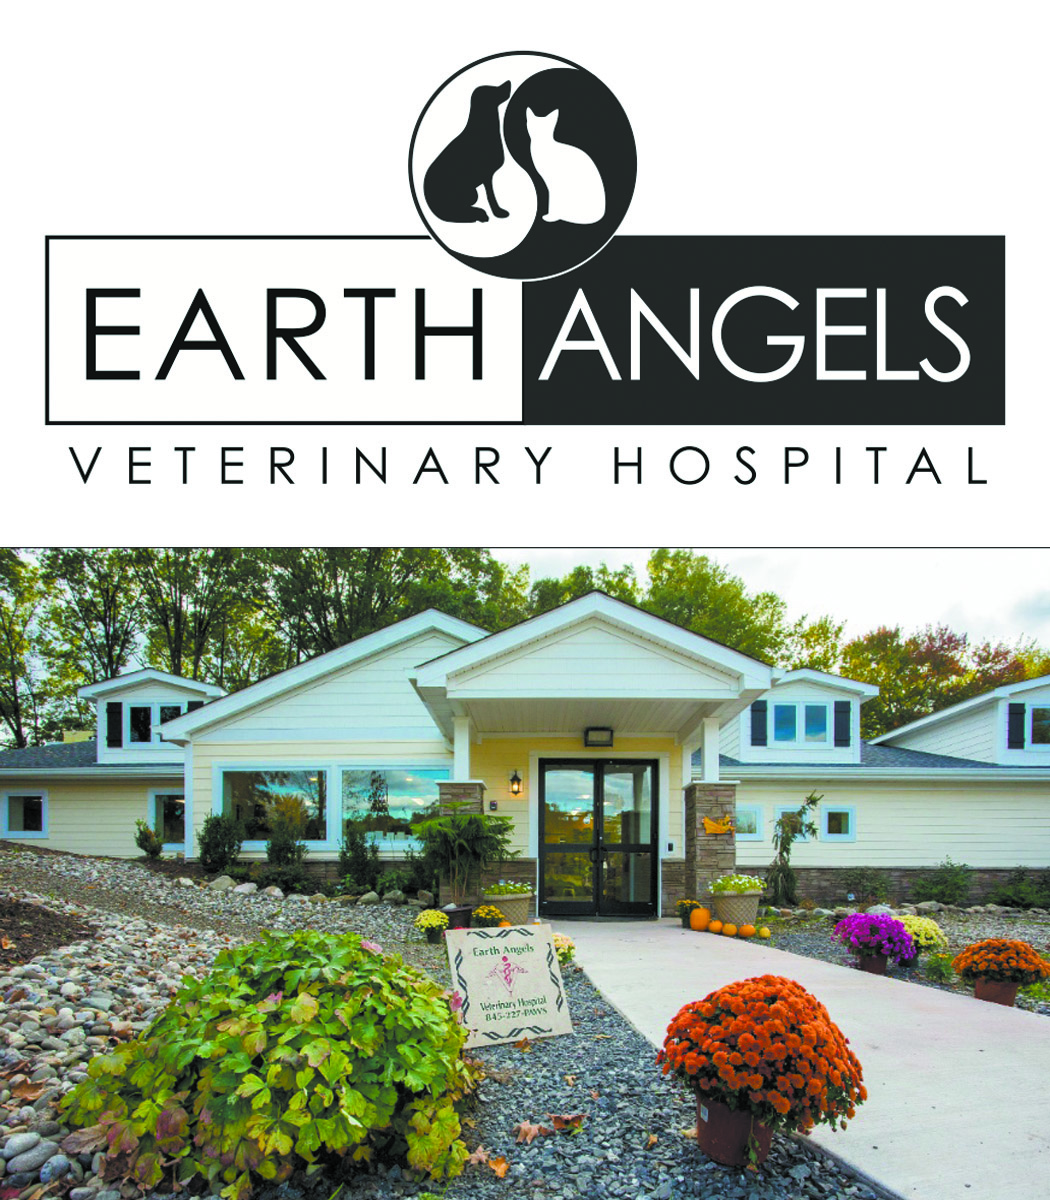 ALTERNATIVE & CONVENTIONALThe best integrative medicine available for a holistic approach to your pet's healthcare. - 44 Saint Nicholas Road, Wappingers Falls, NY845.227.7297more…